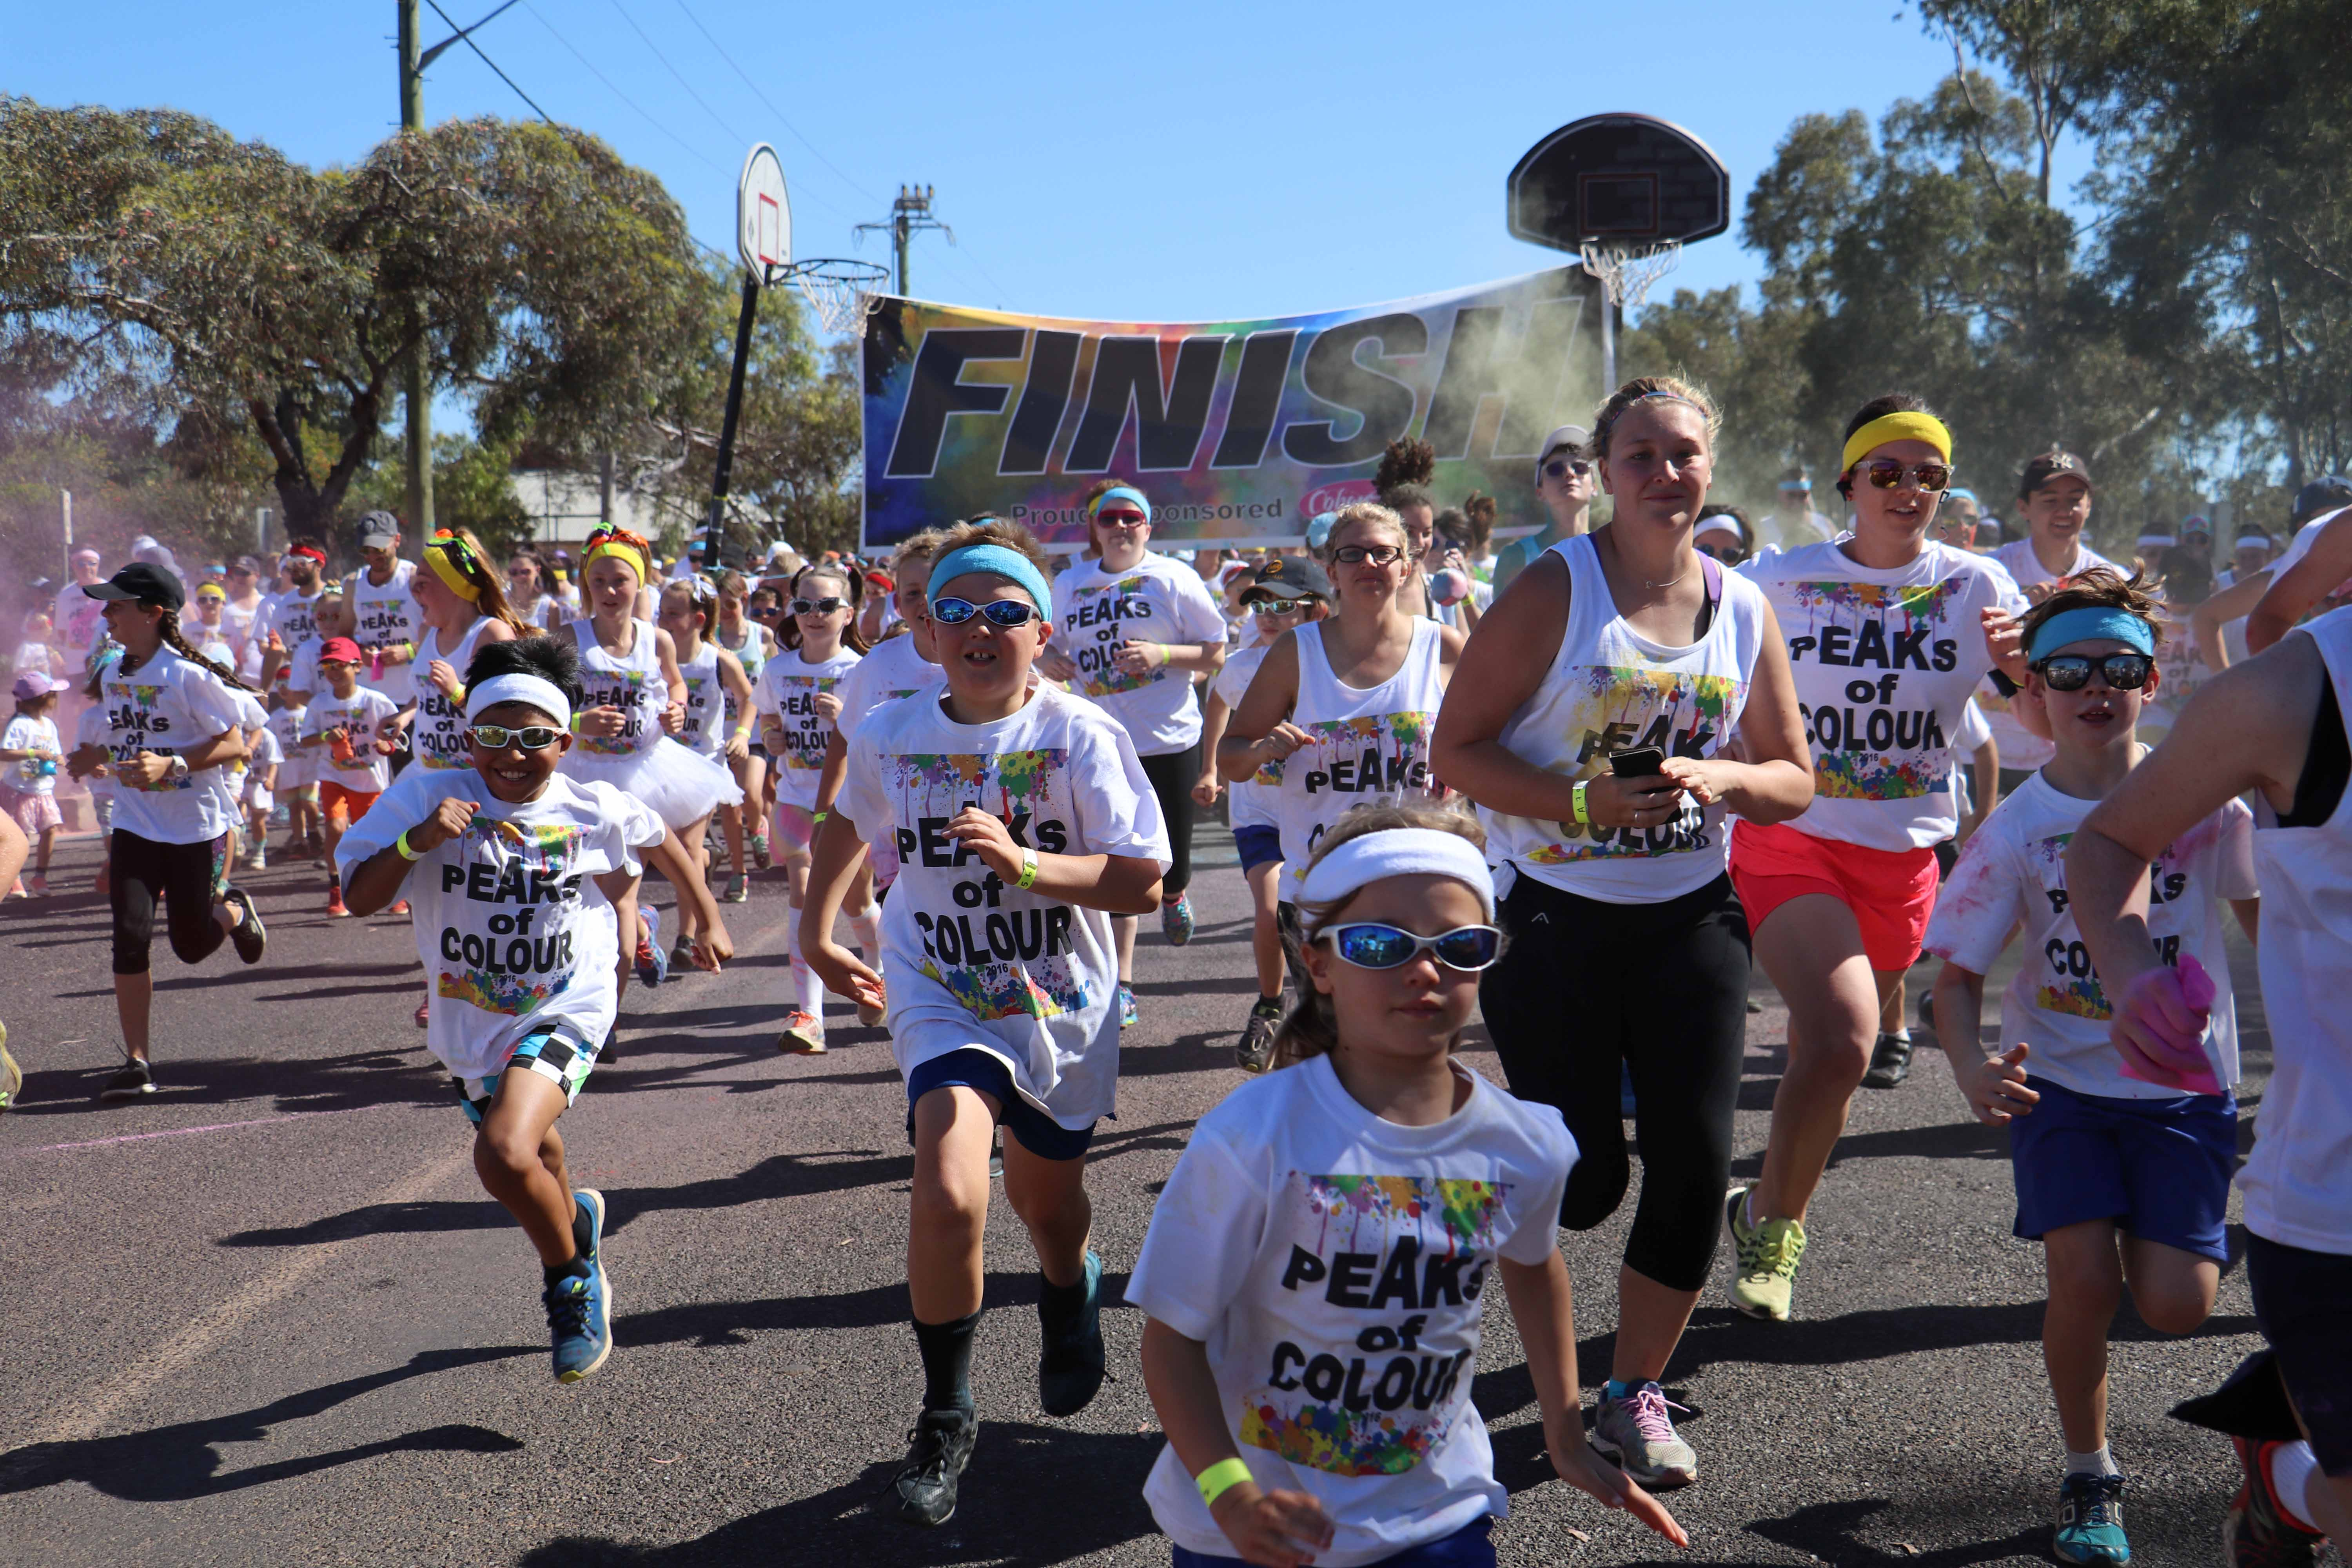 Saturday's 2016 Peaks of Colour Fun Run organised by the Cobar Youth Council proved once again to be a big drawcard on this year's Festival of the Miner's Ghost program. This year's run attracted 390 competitors of all ages. The fun run was one of a number of festival events to attract a good crowd with the Dust Bowl Fuel Burners' Show and Shine receiving a record 44 entries and the  Markets in the Park on Saturday afternoon at Drummond Park also attracting a large number of locals and visitors keen to grab a  bargain, taste some excellent food and be entertained by our local talented musicians. See Pages 24 and 25 of this week's edition for photos from all of the festival events or head to our website, www.cobarweekly.com.au, to see them in colour.